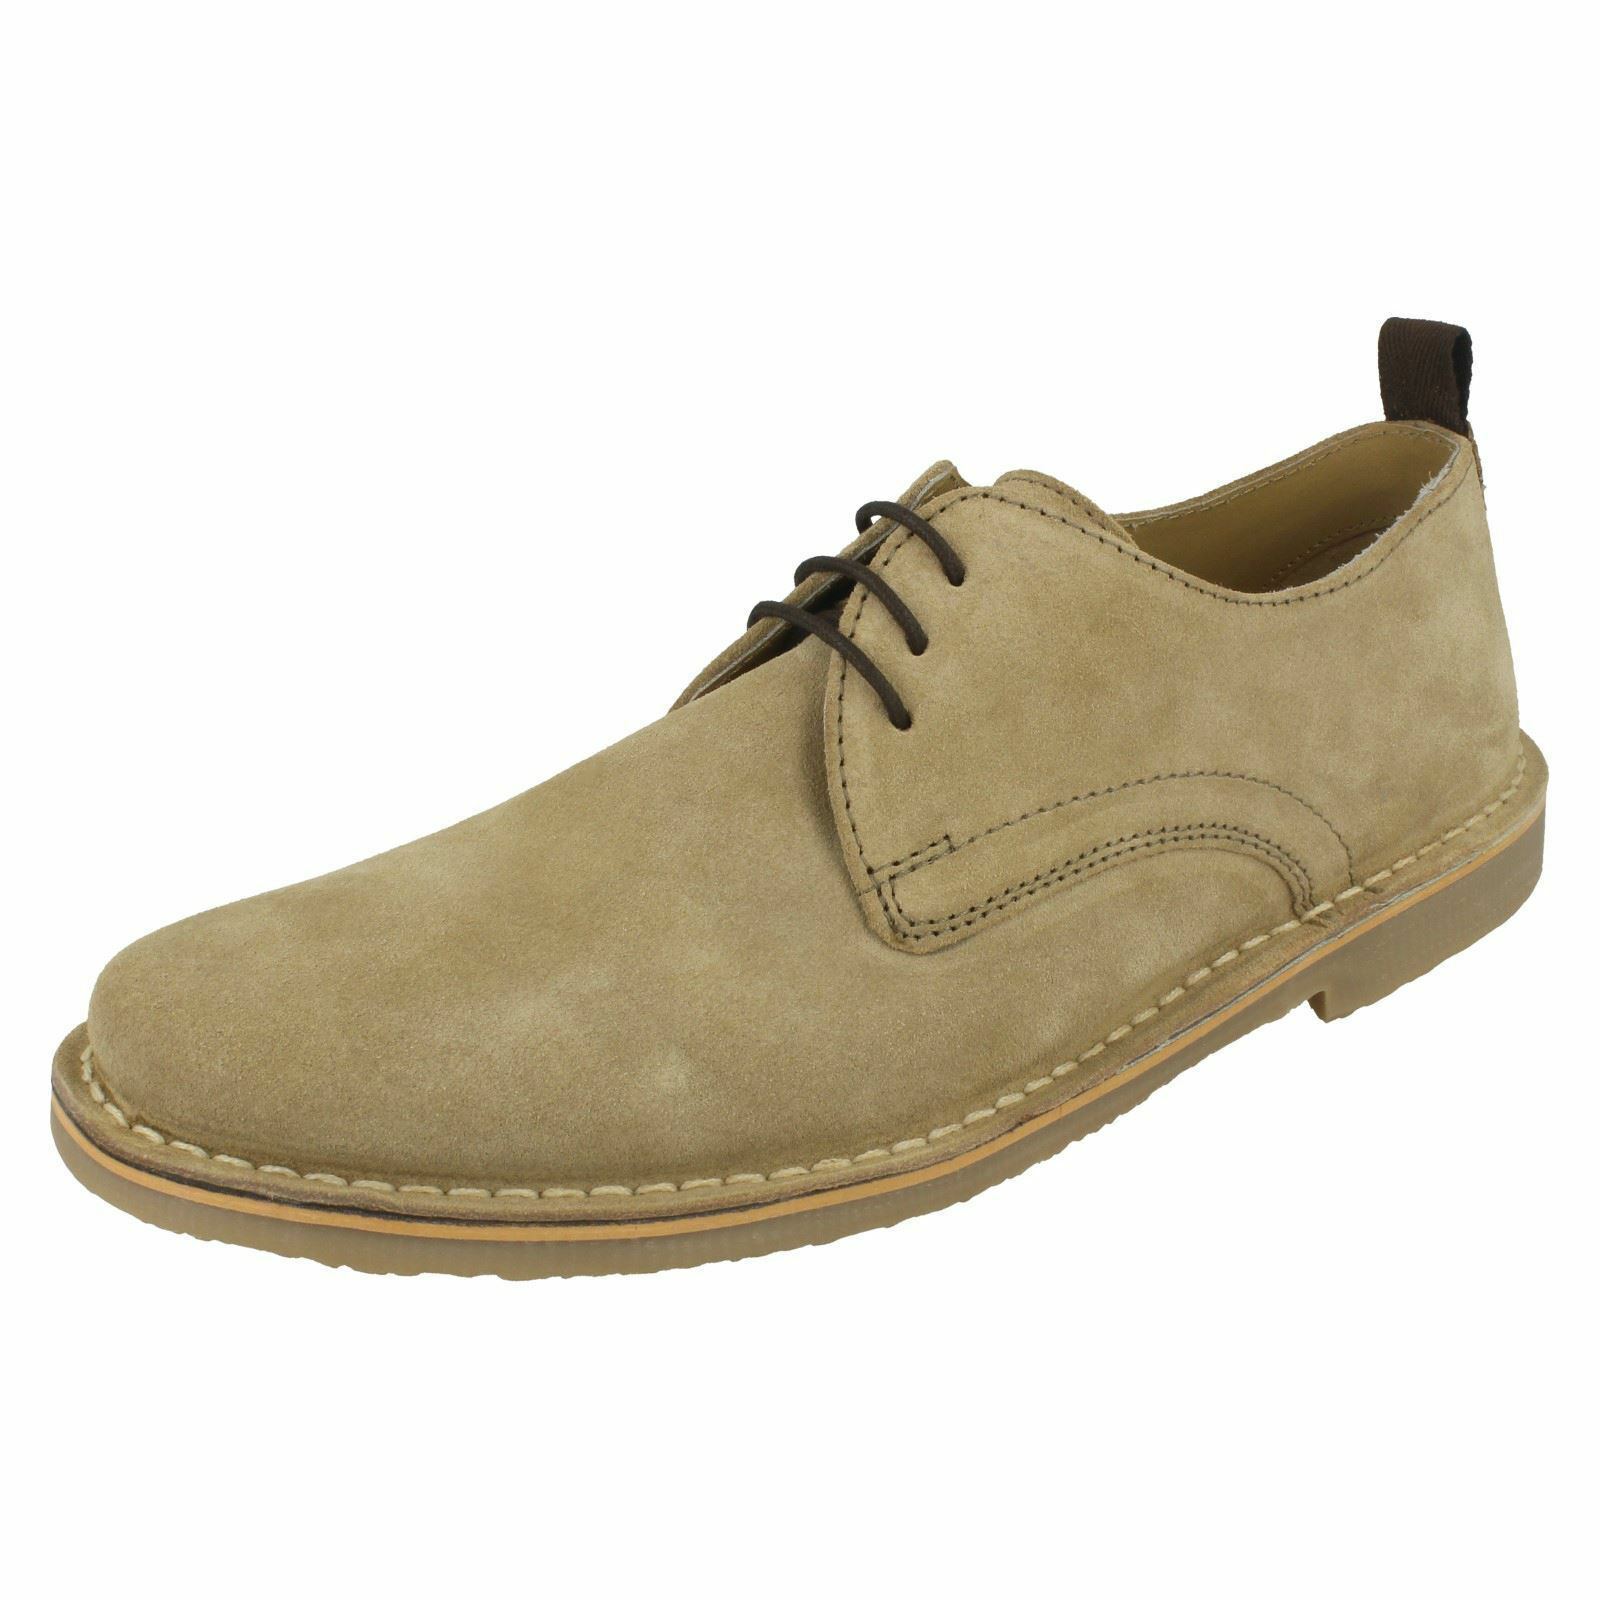 Mr/Ms IKON BENJAMIN TAUPE Settlement SUEDE LEATHER SHOE Cheap Settlement TAUPE Price Current shape dc356f